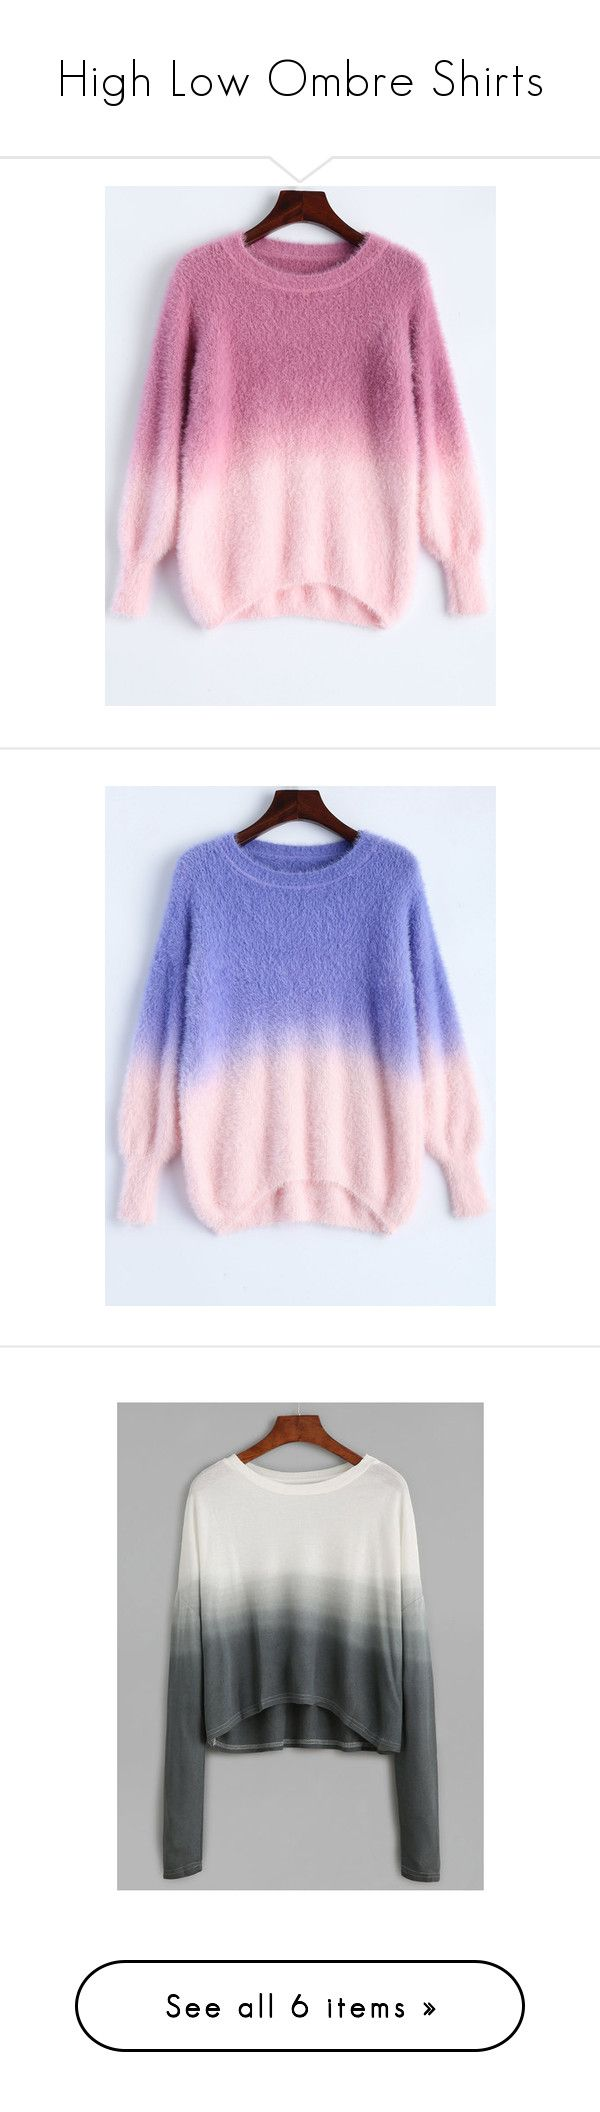 """""""High Low Ombre Shirts"""" by qwertyuiop-sparta ❤ liked on Polyvore featuring tops, sweaters, shirts, shirt sweater, ombre top, pink ombre shirt, ombre shirt, shirt top, pink ombre sweater and pink top"""